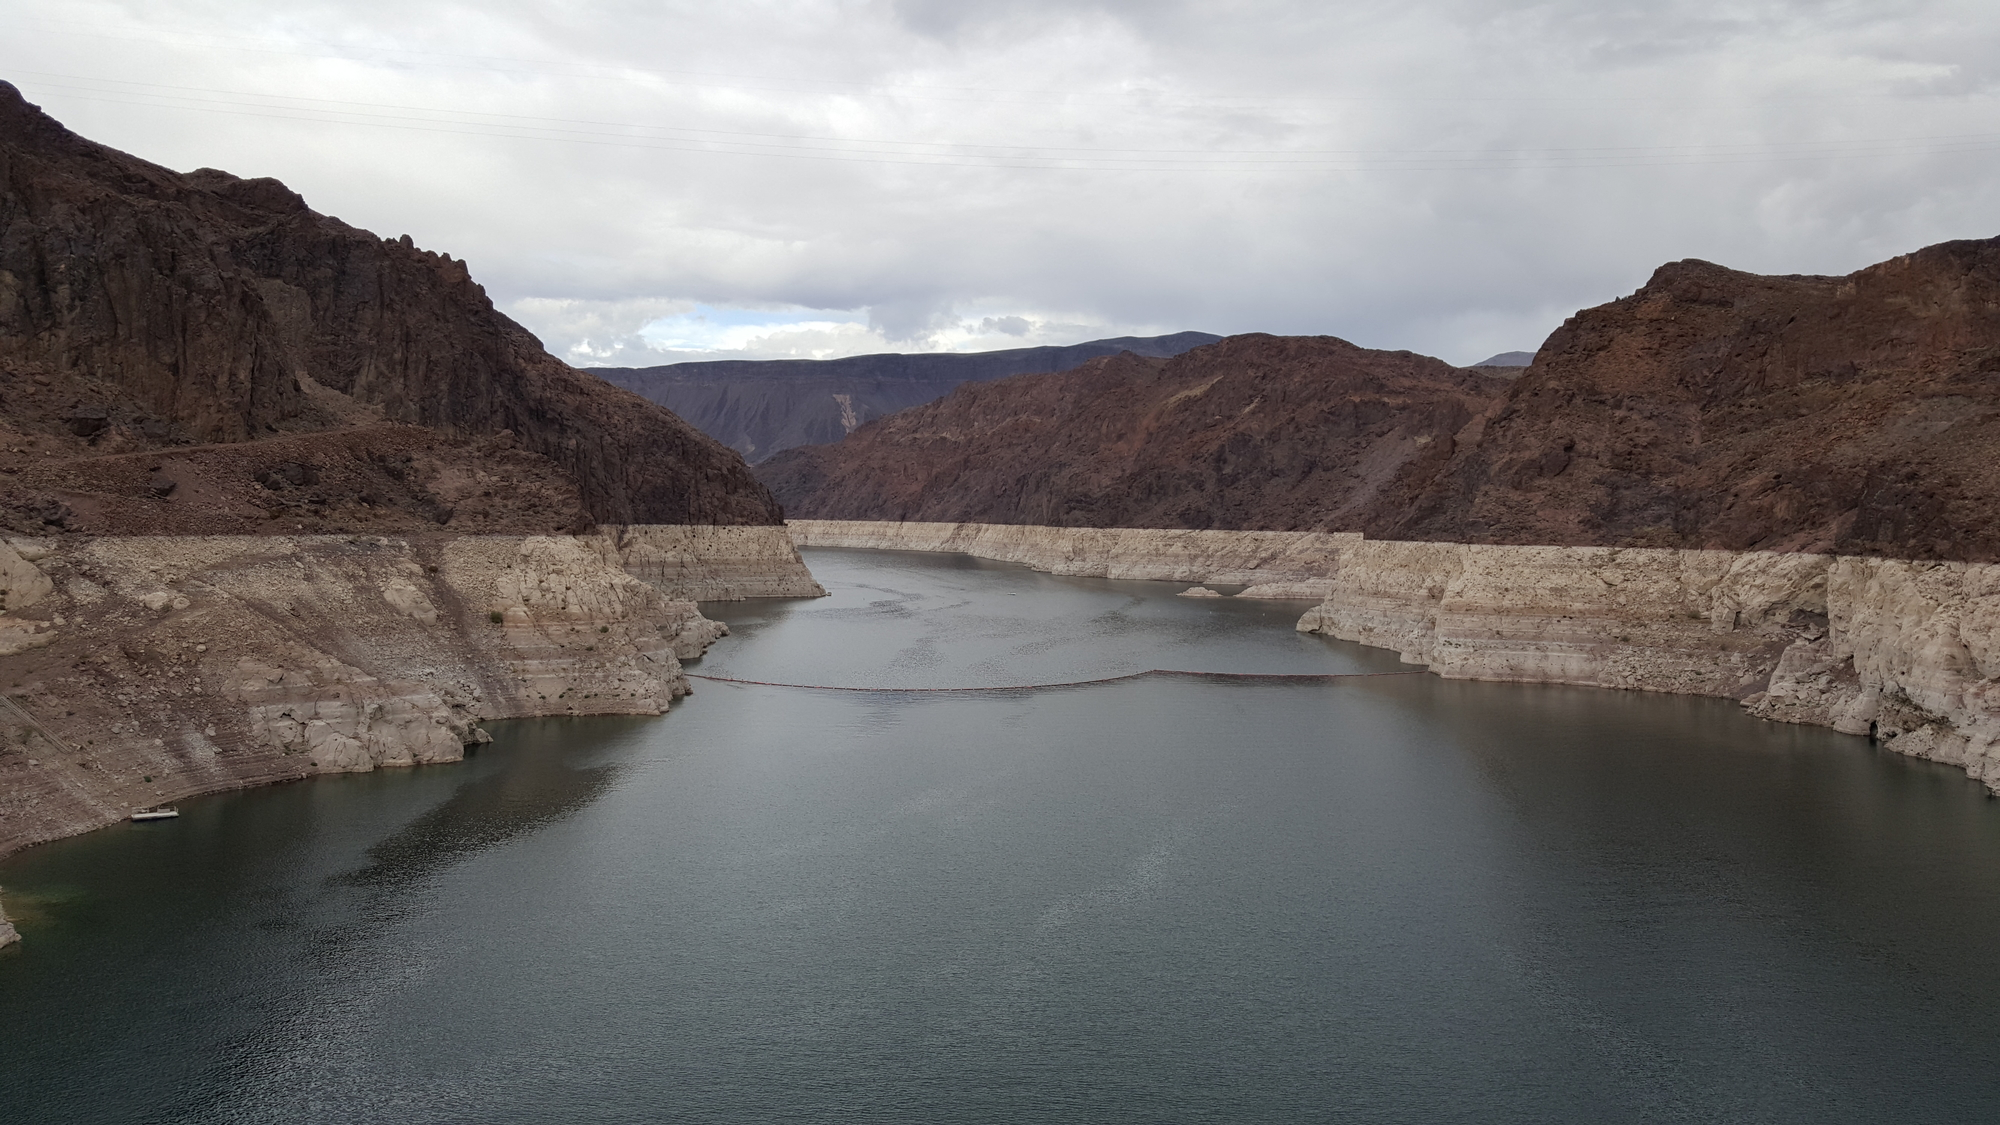 Colorado River Water Usage